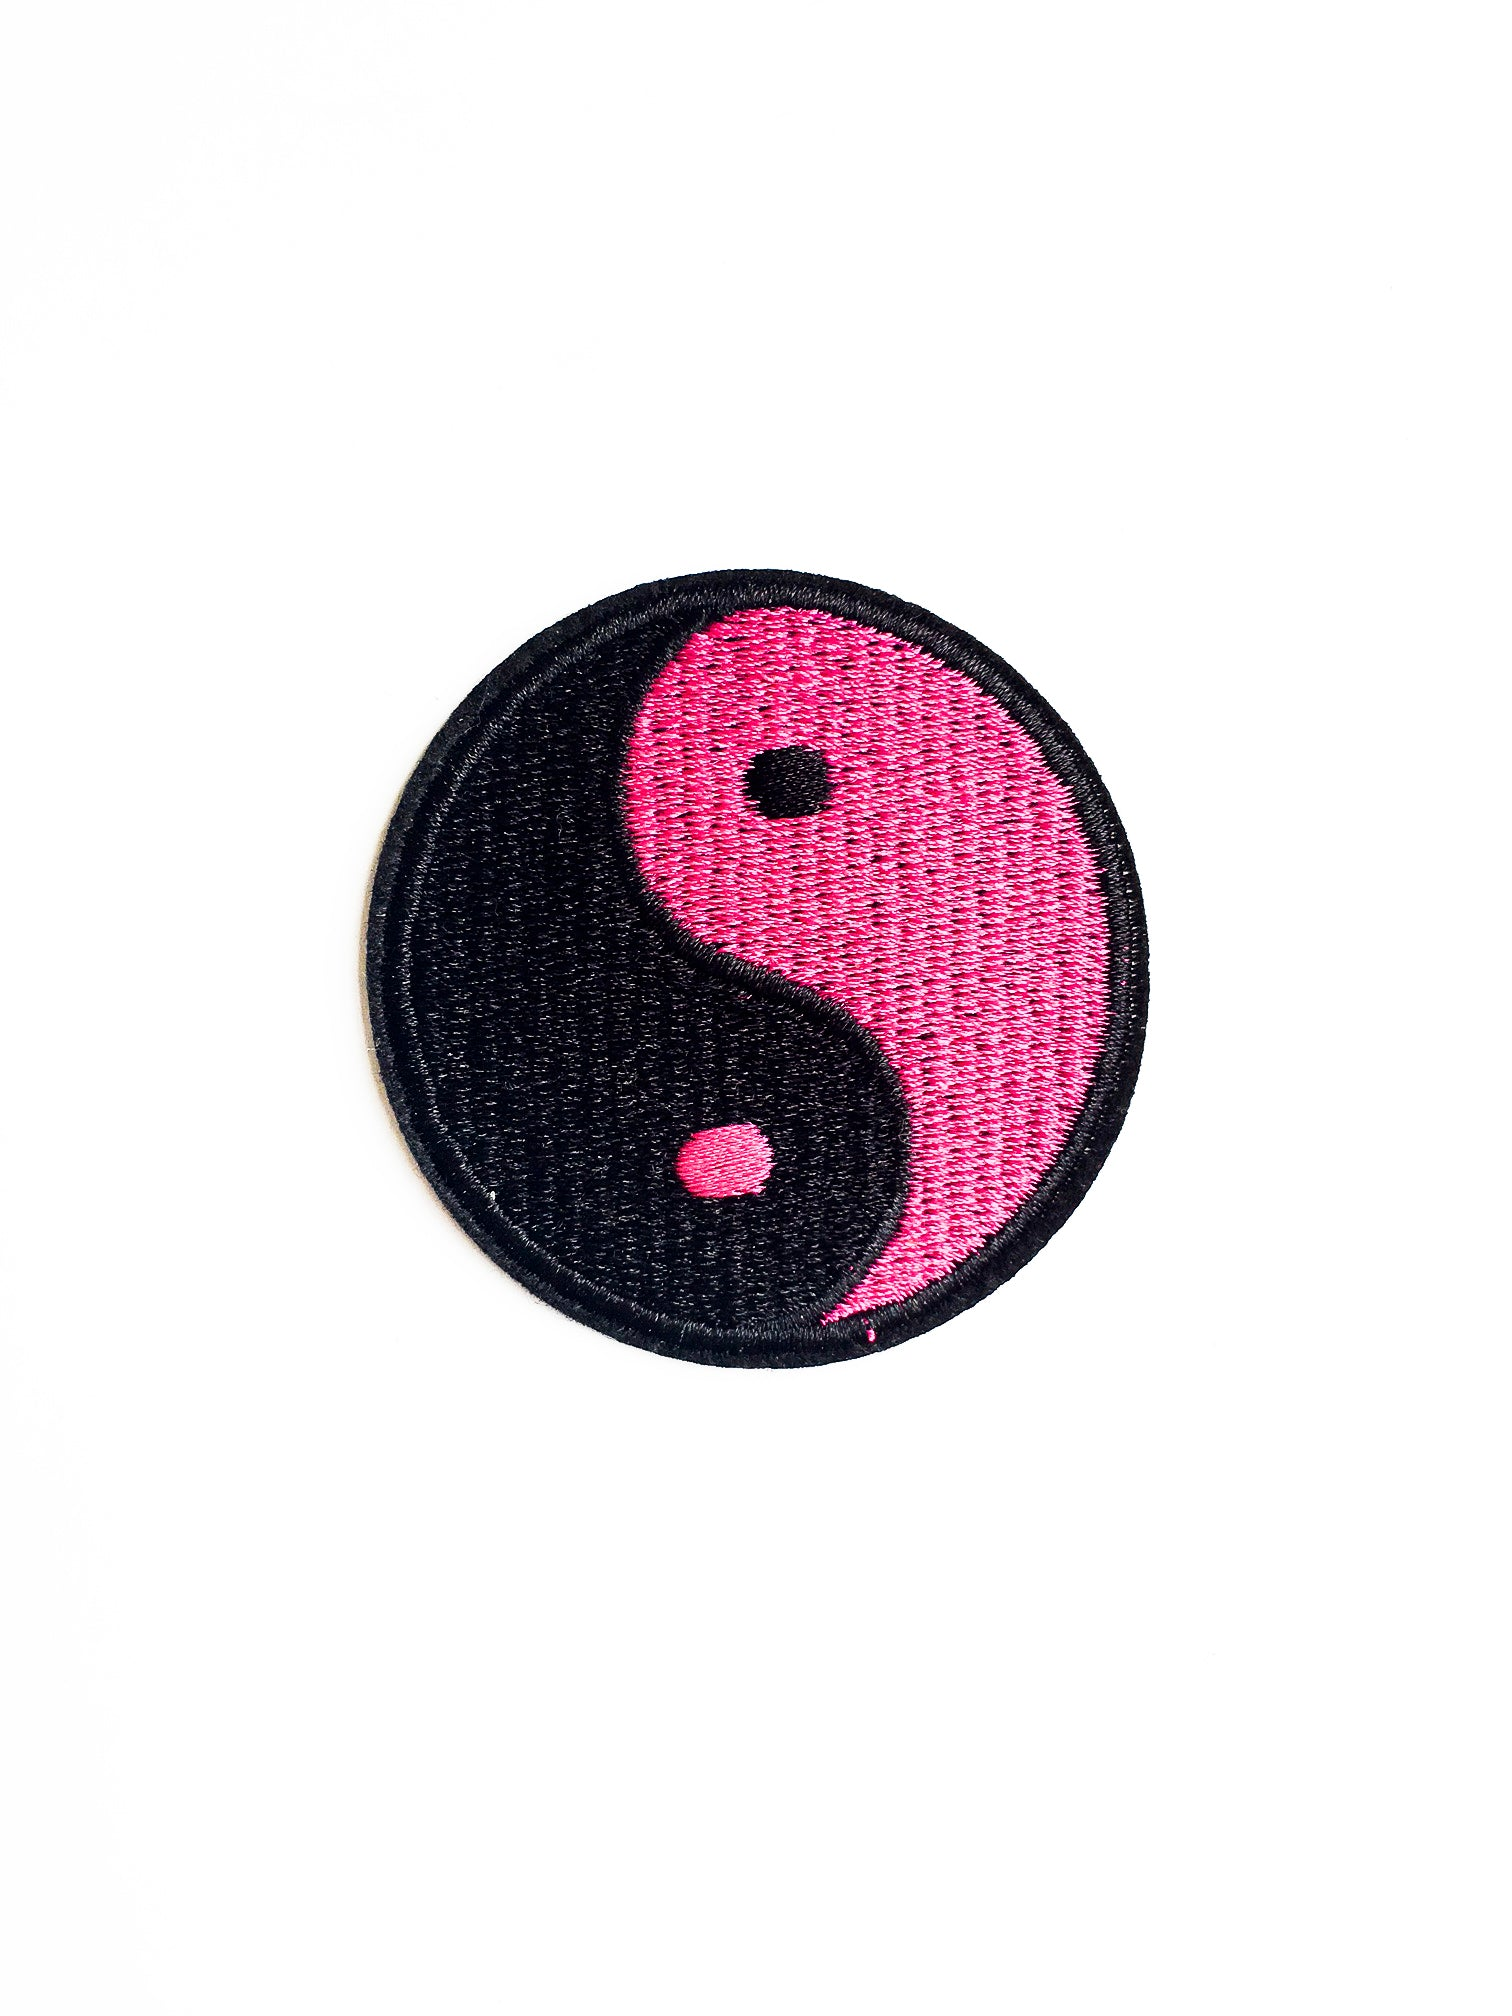 Pink and Black Ying Yang Iron on Patch